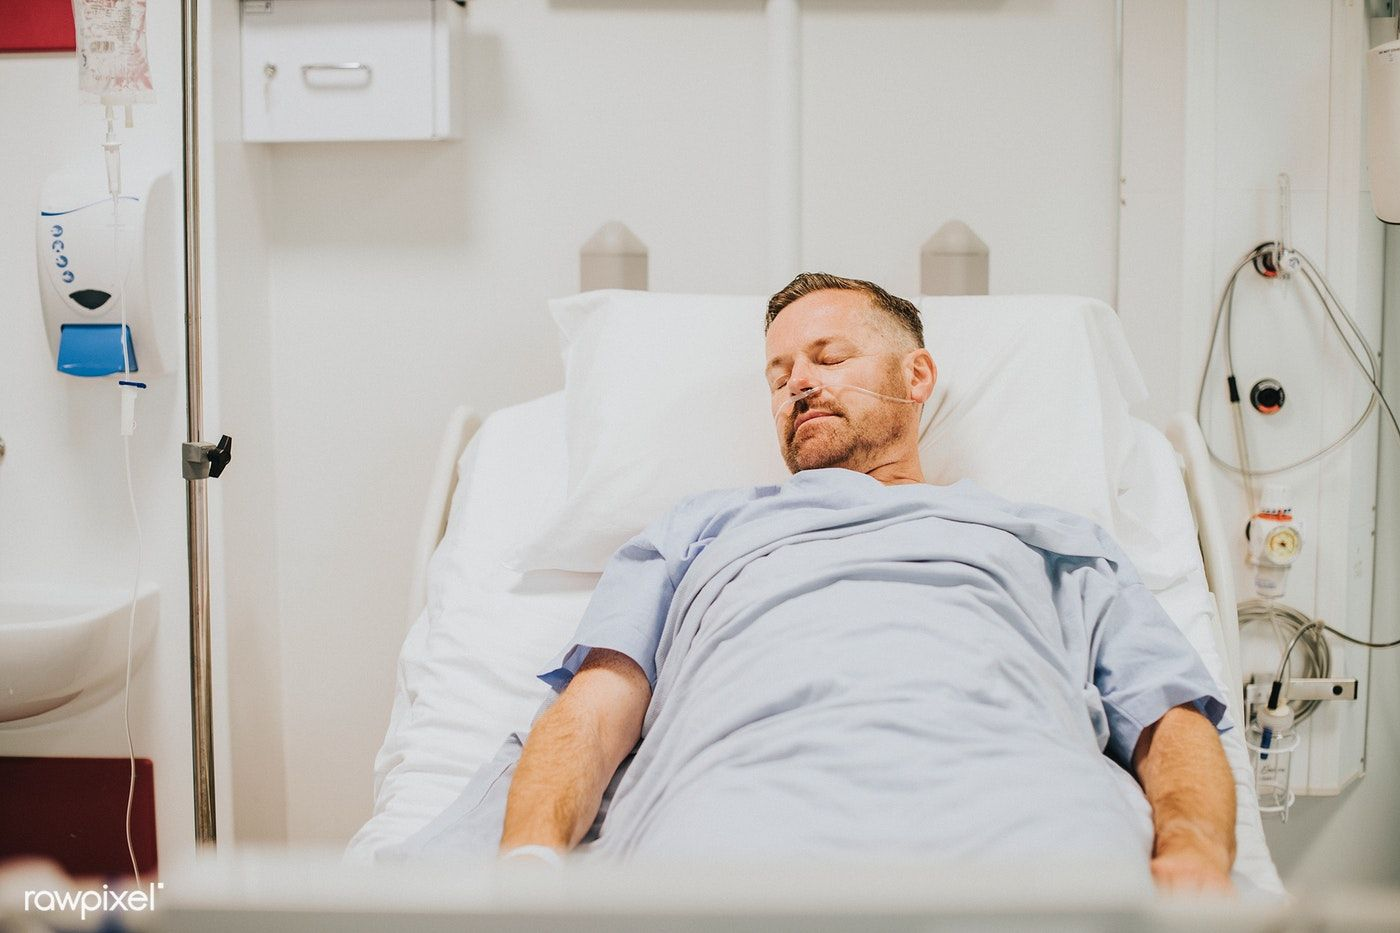 Download premium photo of Sick man in a hospital bed